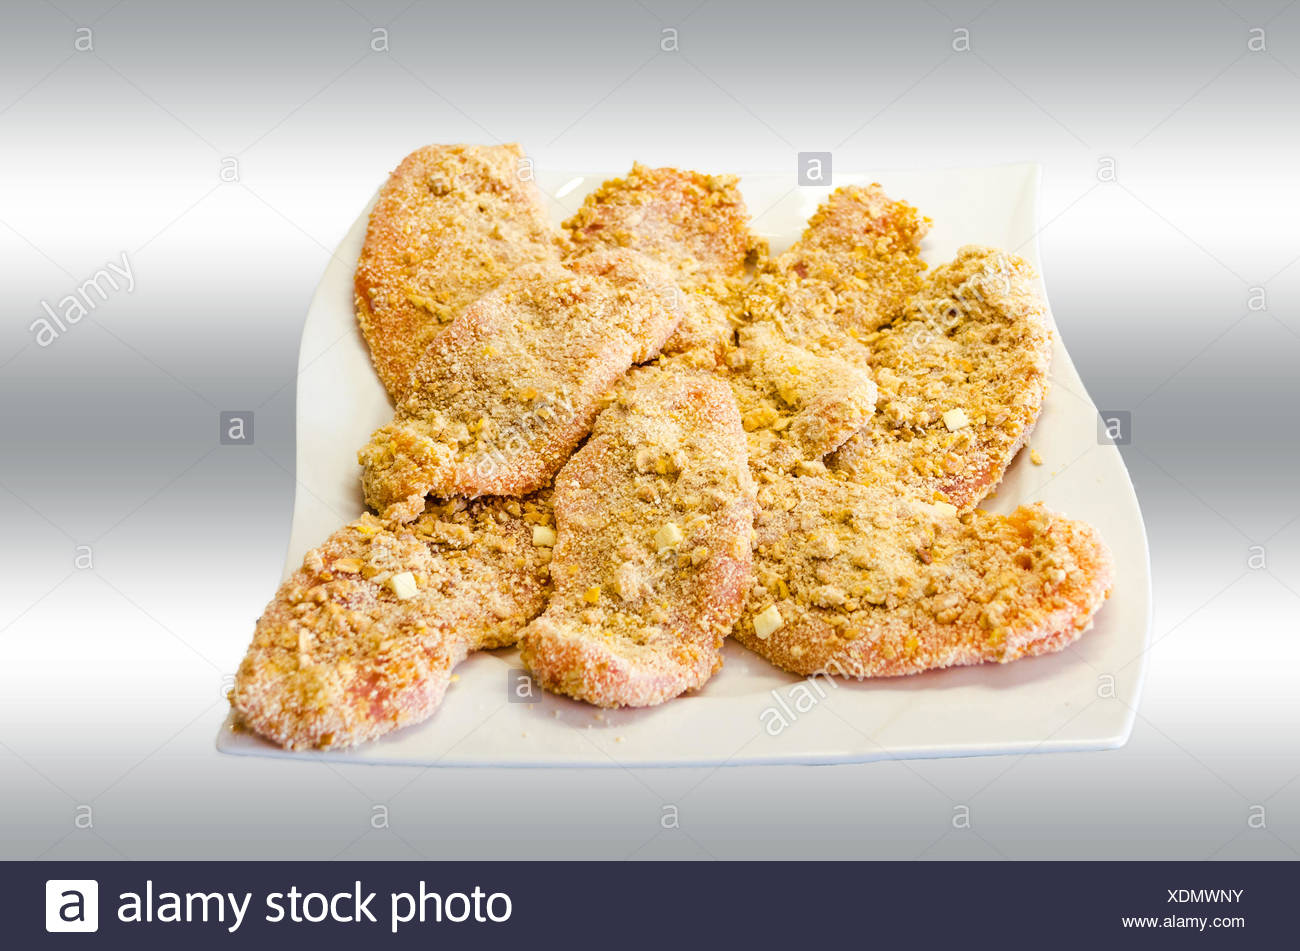 Breaded Cutlet - Stock Image